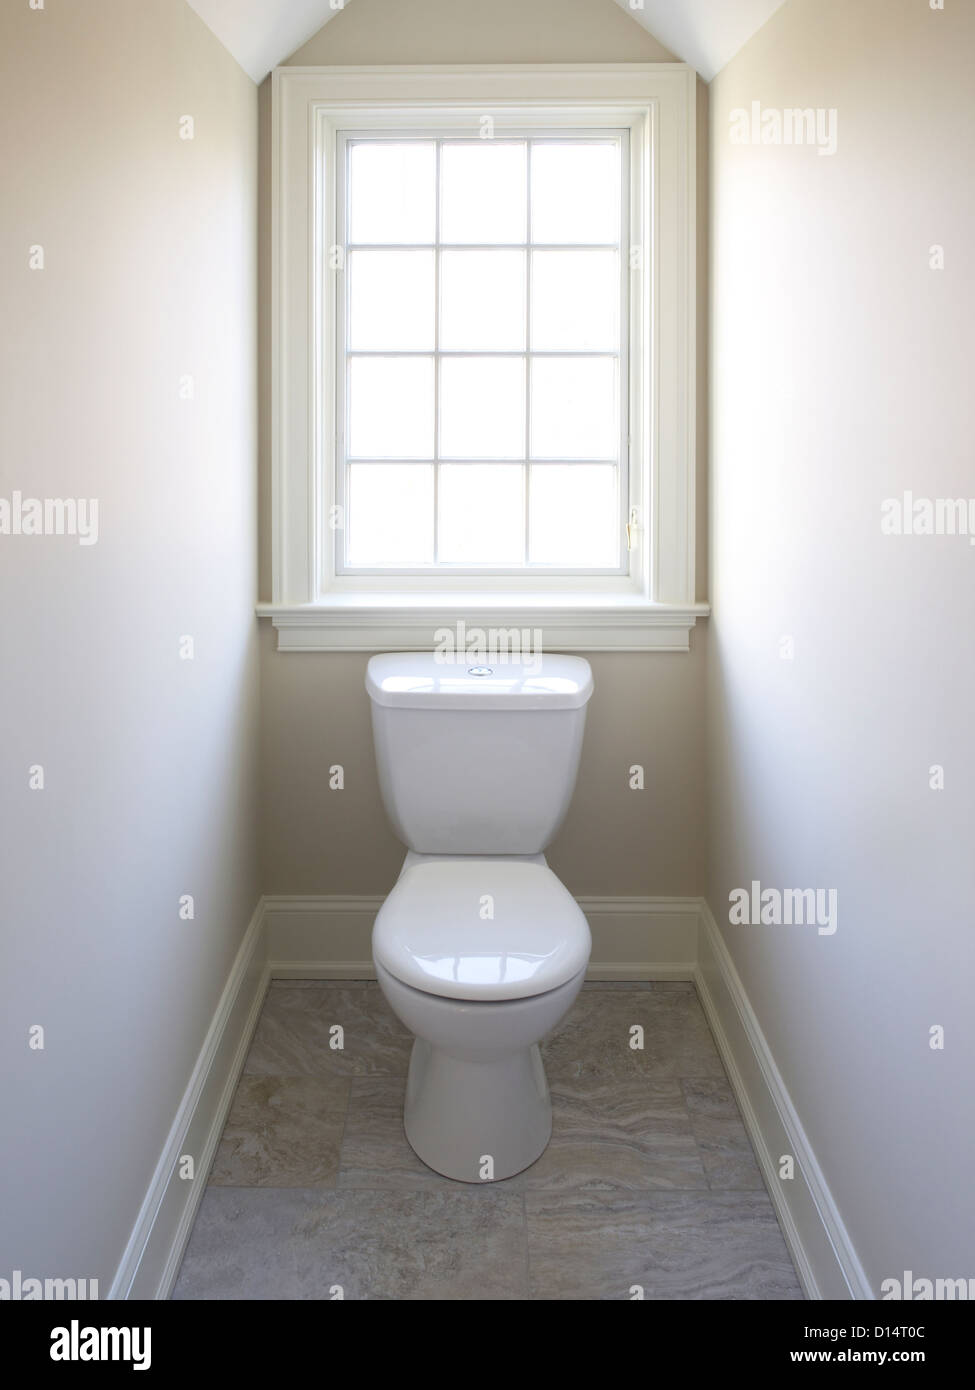 Toilet Window In Very Small Room